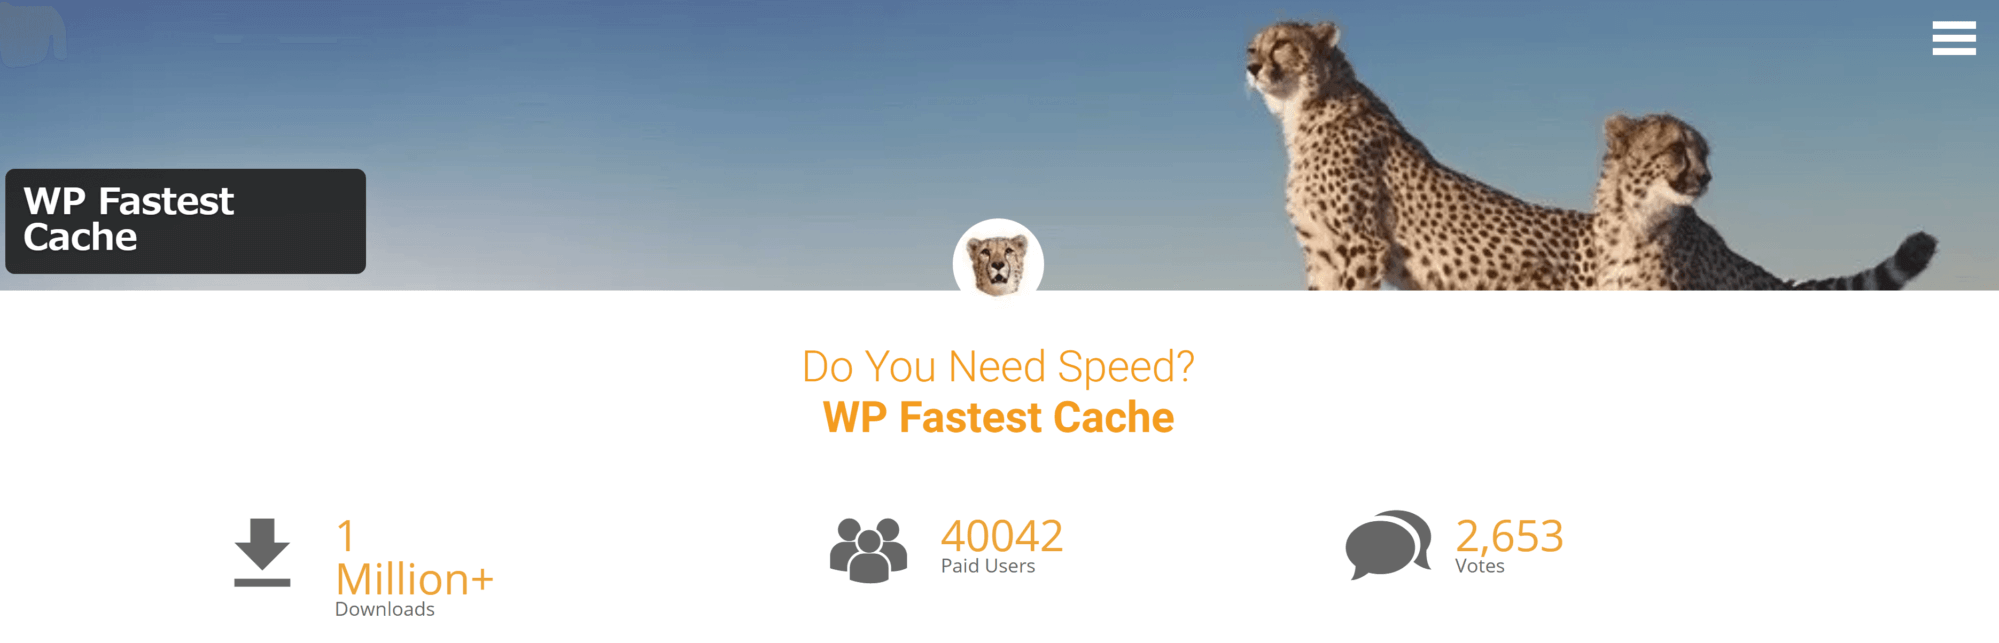 wp-fast-cache-main-page